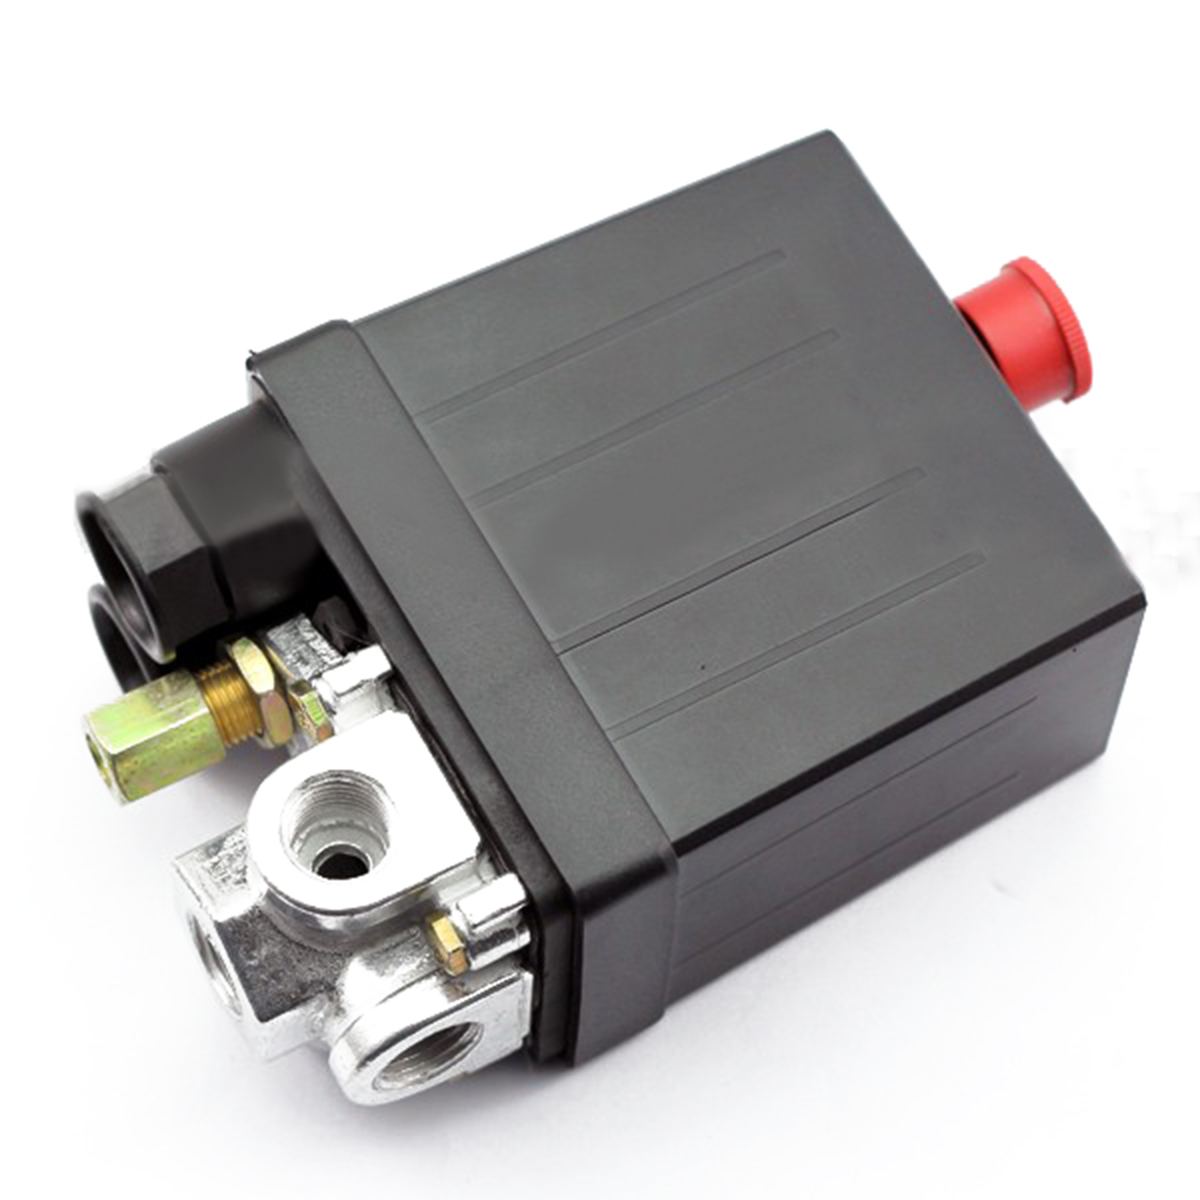 Practical Heavy Duty Air Compressor Pressure Switch Auto Control Valve 240V 16A 90 PSI -120 PSI Mayitr heavy duty air compressor pressure control switch valve 90 120psi 12 bar 20a ac220v 4 port 12 5 x 8 x 5cm promotion price